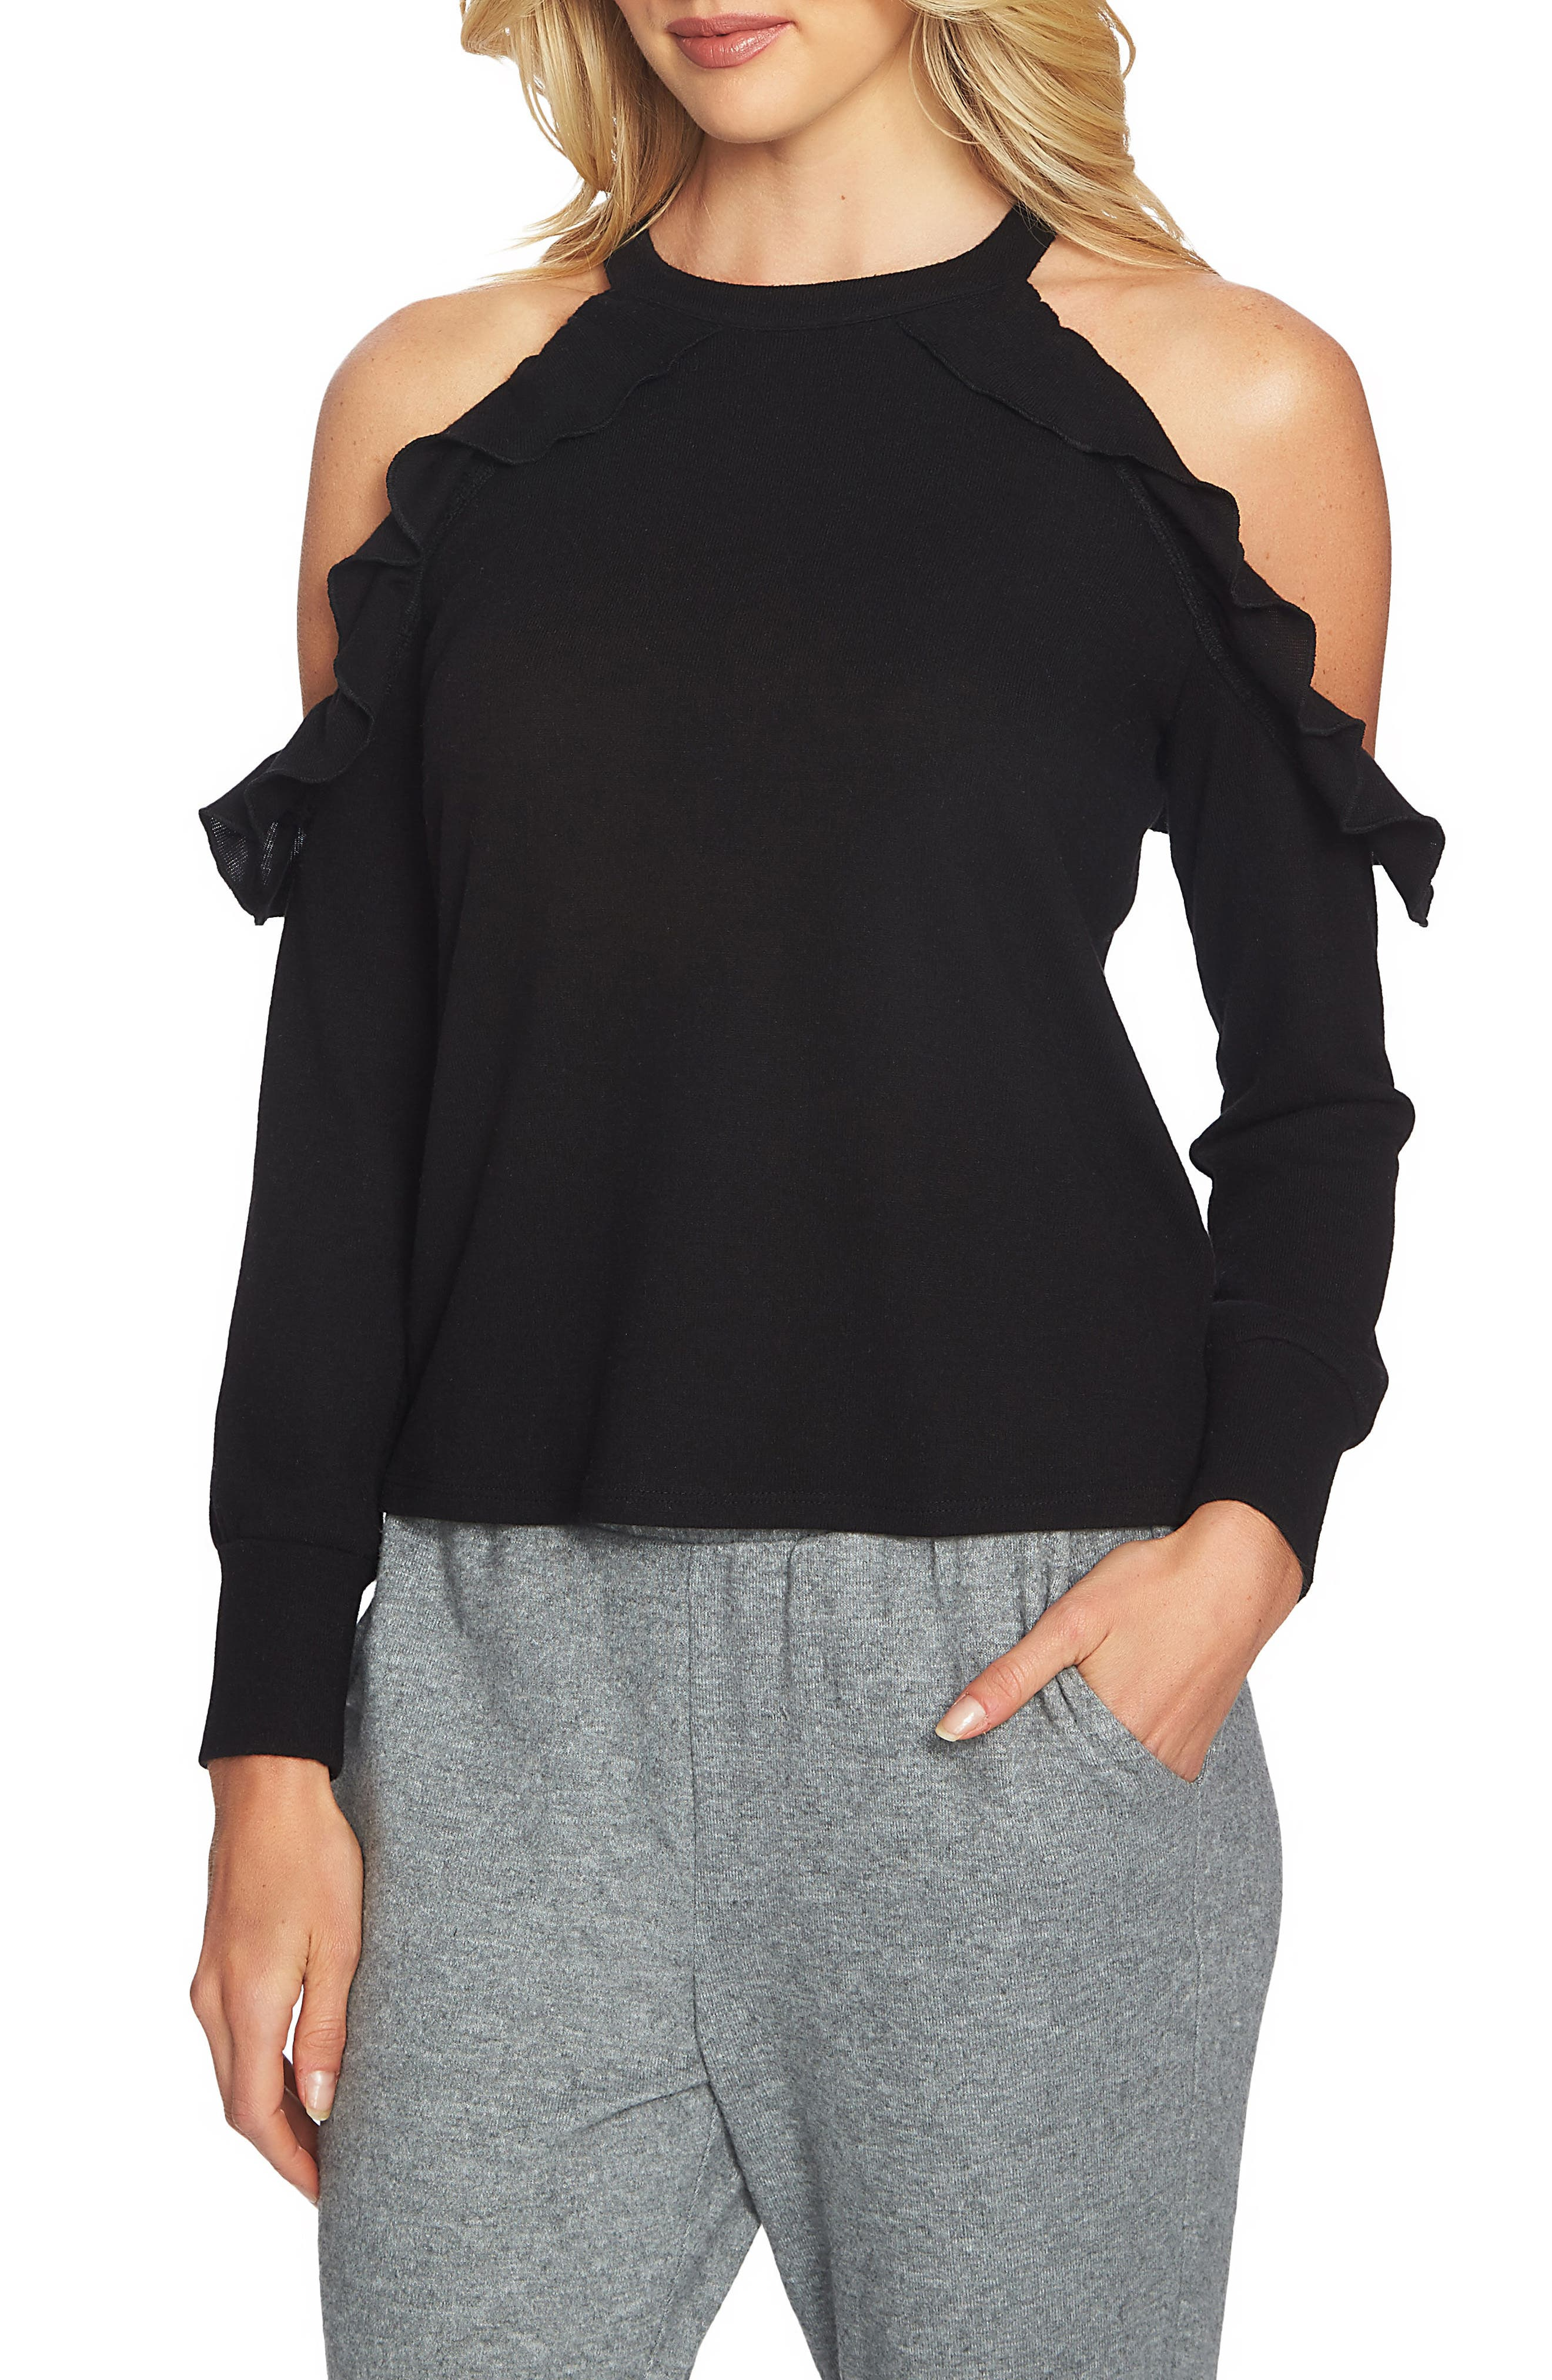 Alternate Image 1 Selected - 1.STATE The Cozy Cold Shoulder Knit Top